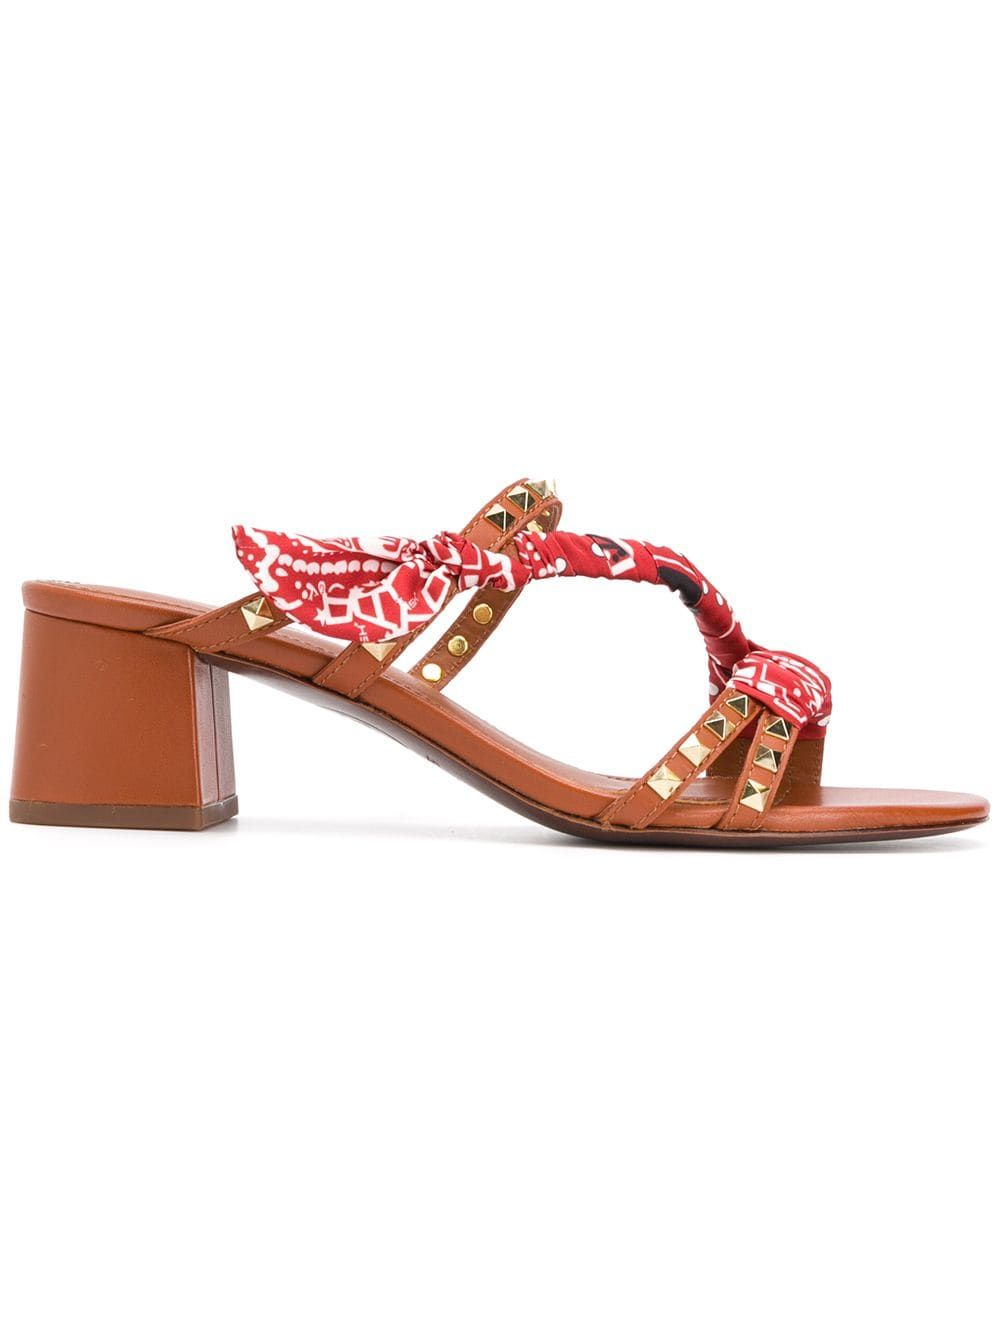 ec83149ec Ash Papaya sandals - Brown in 2019 | Products | Sandals, Brown ...